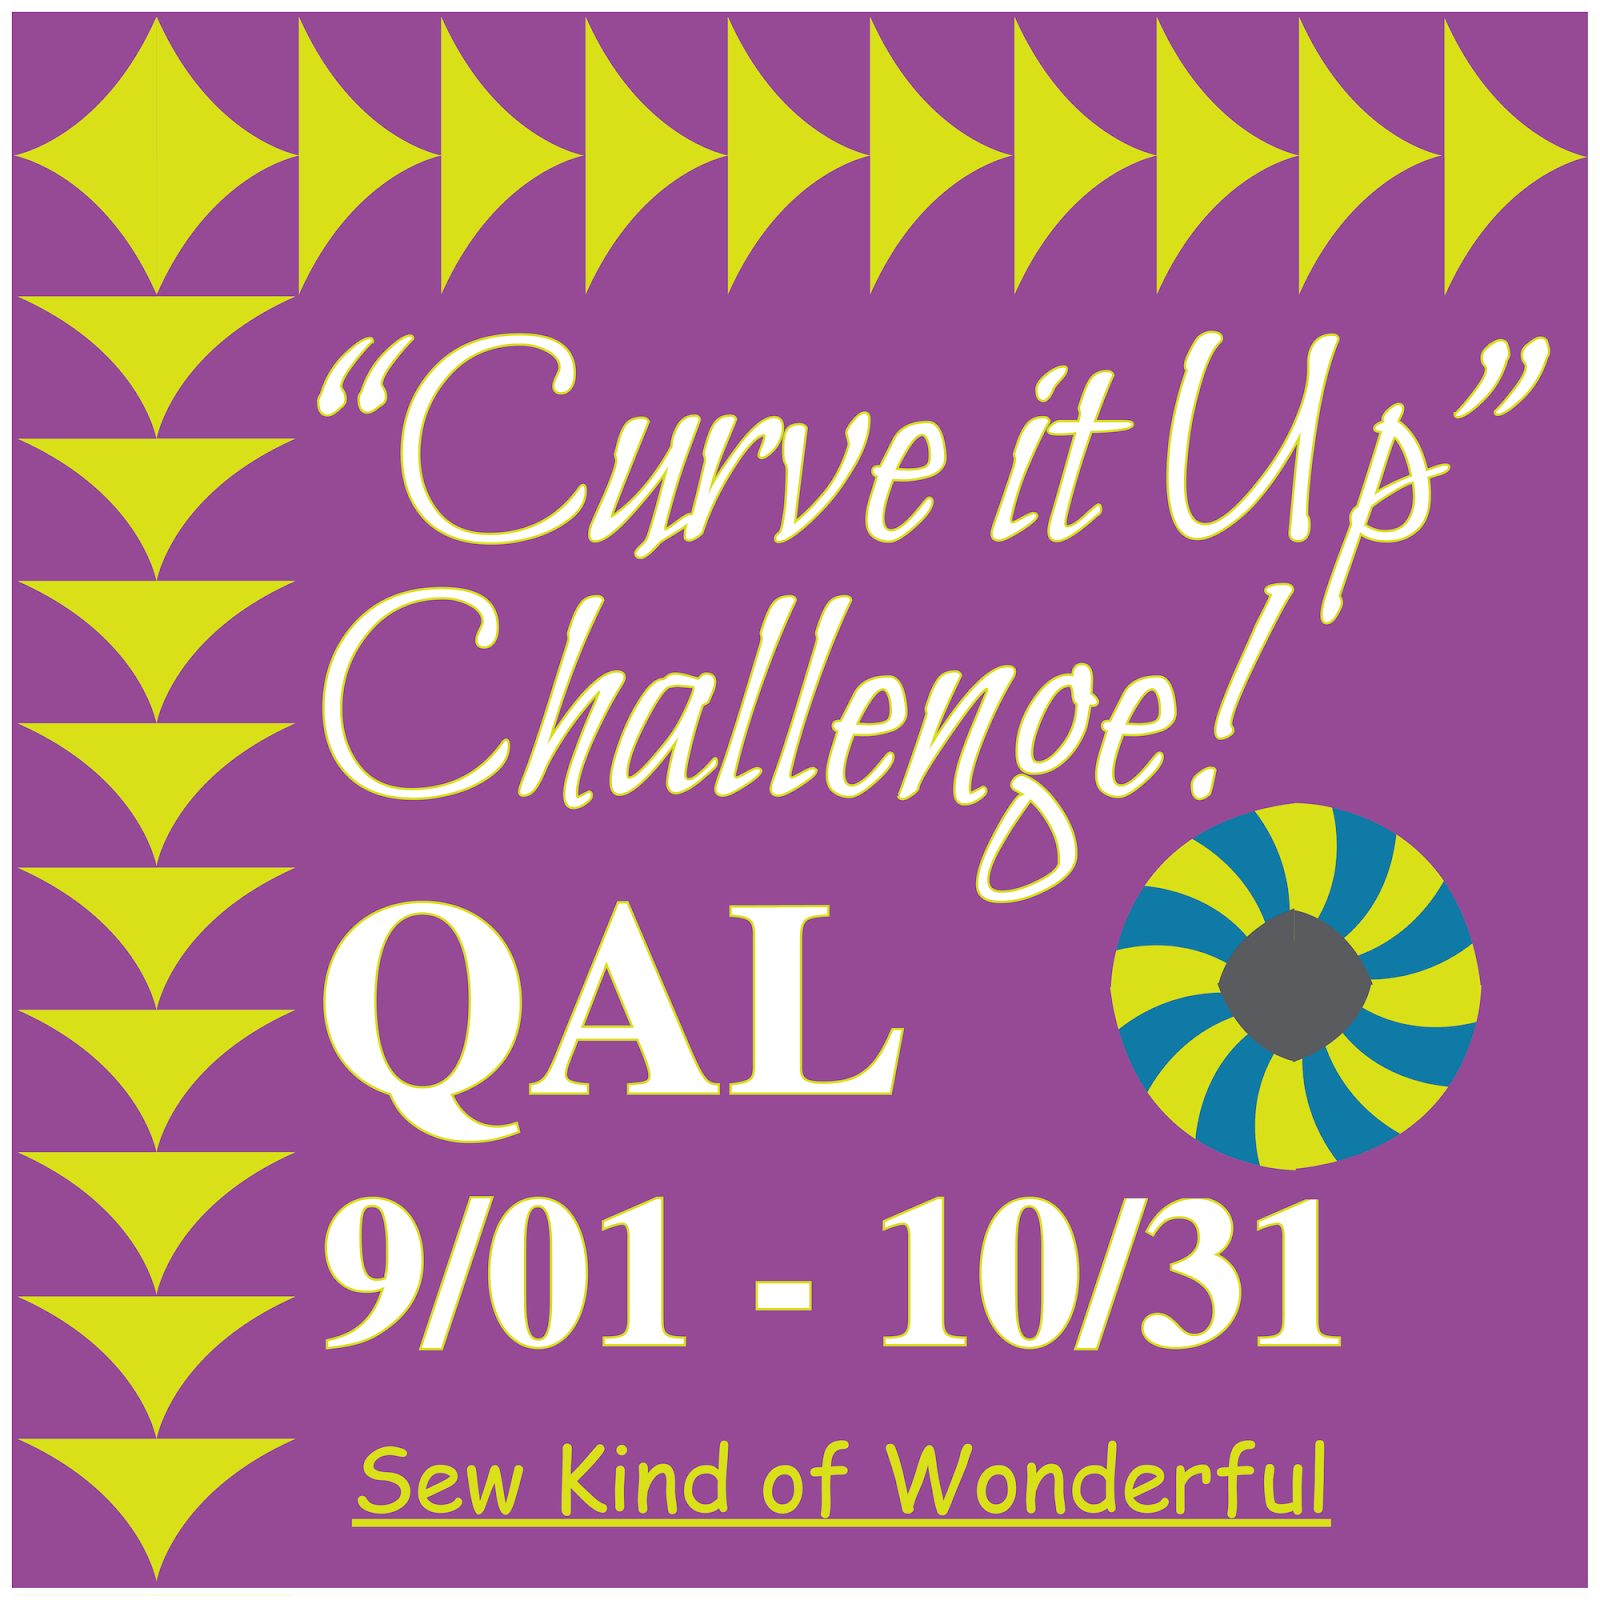 Curve it Up Challenge QAL!